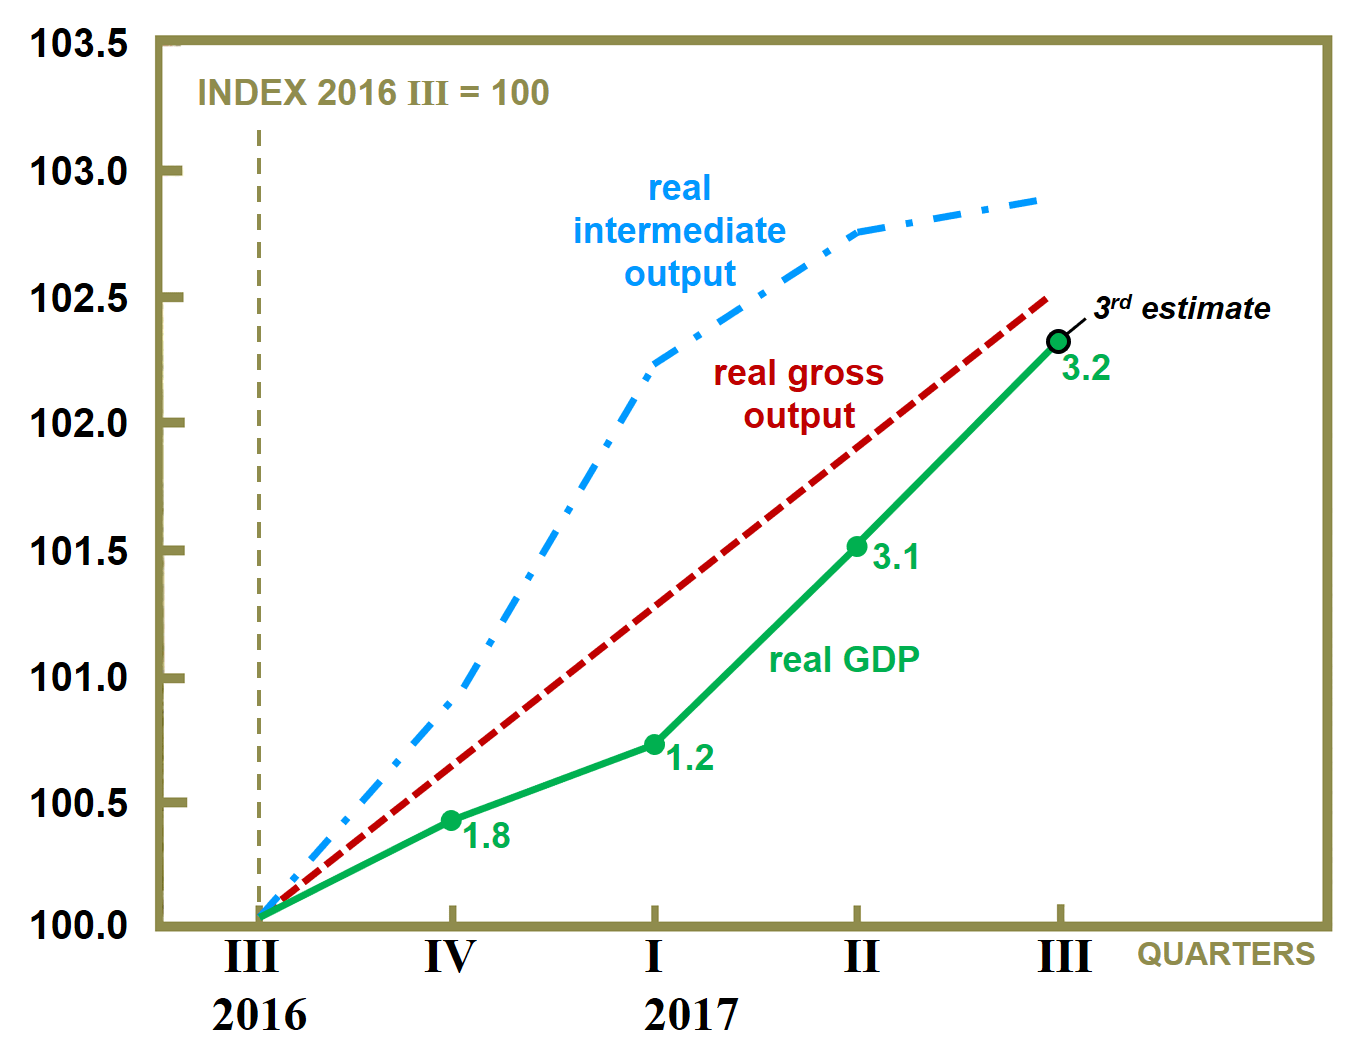 GO Slow: New Leading Indicator Predicted Slowdown in GDP